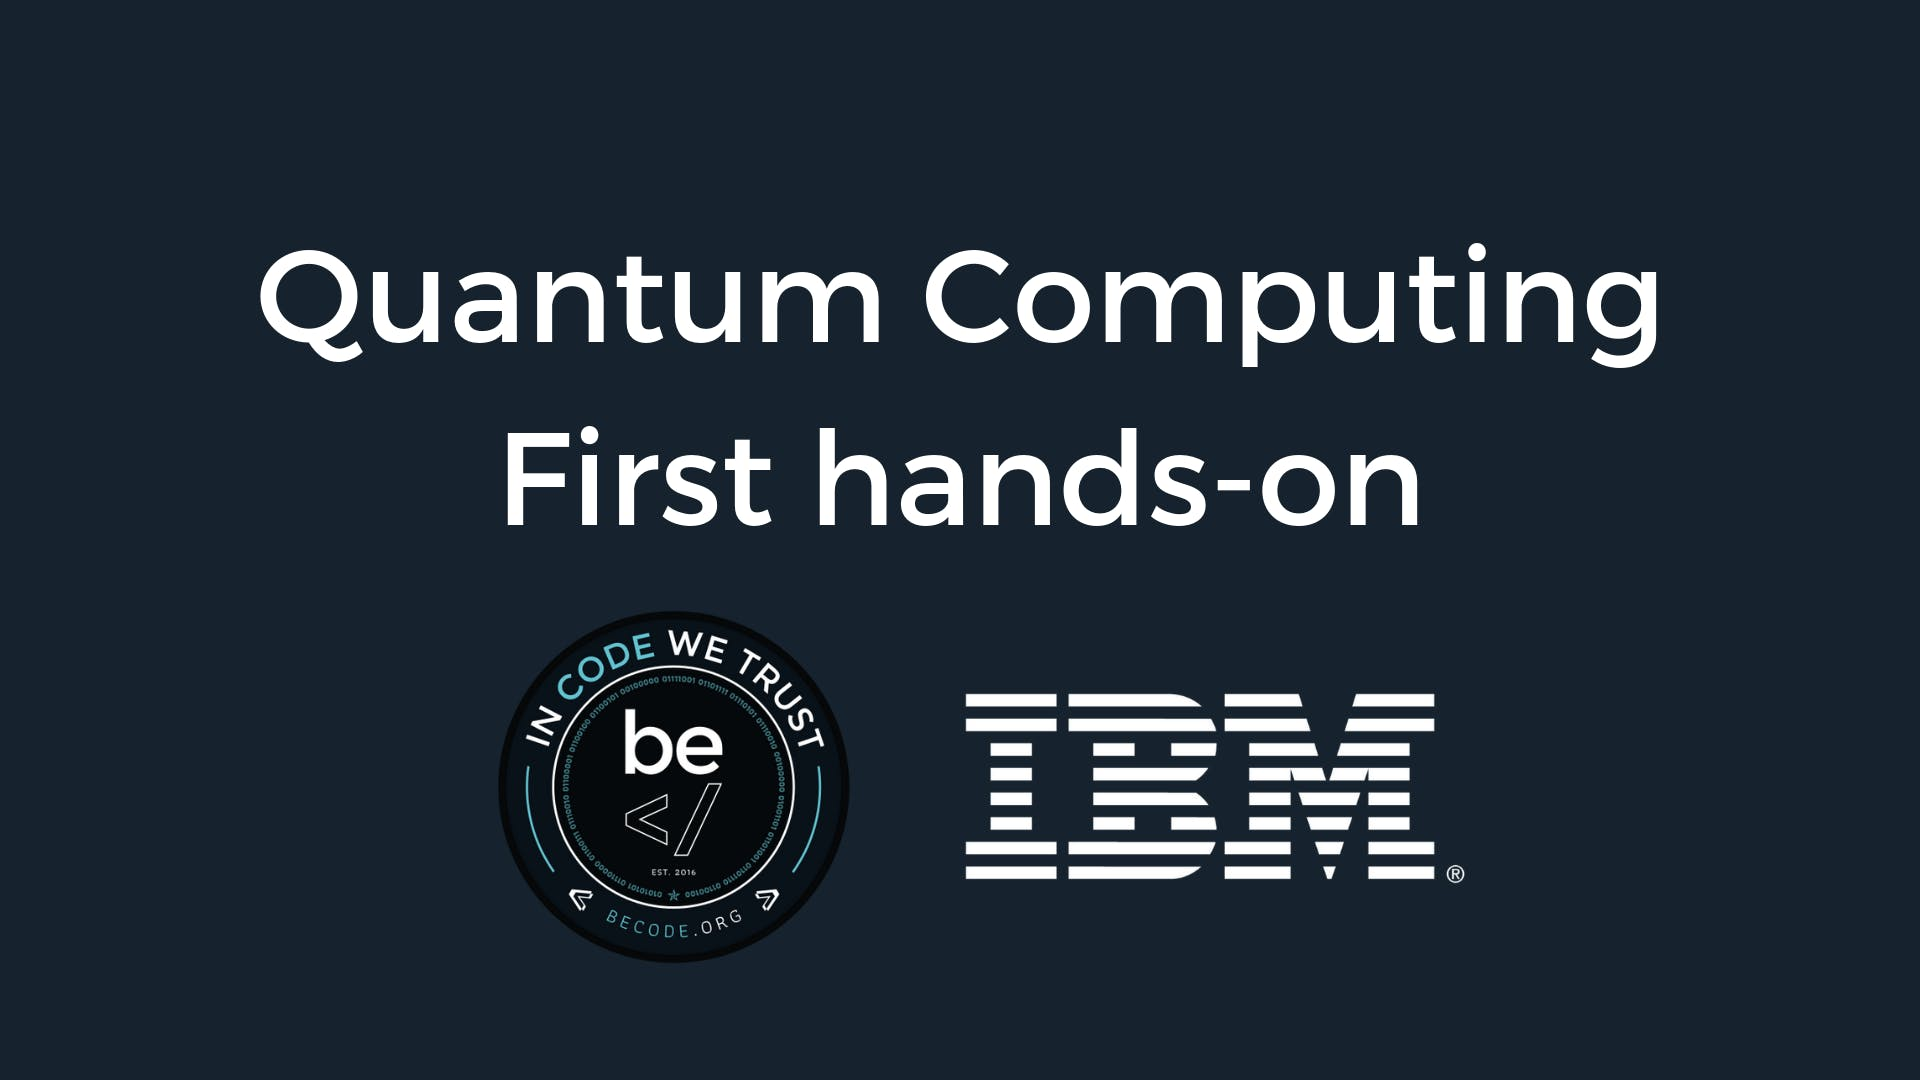 Quantum Computing - First hands-on